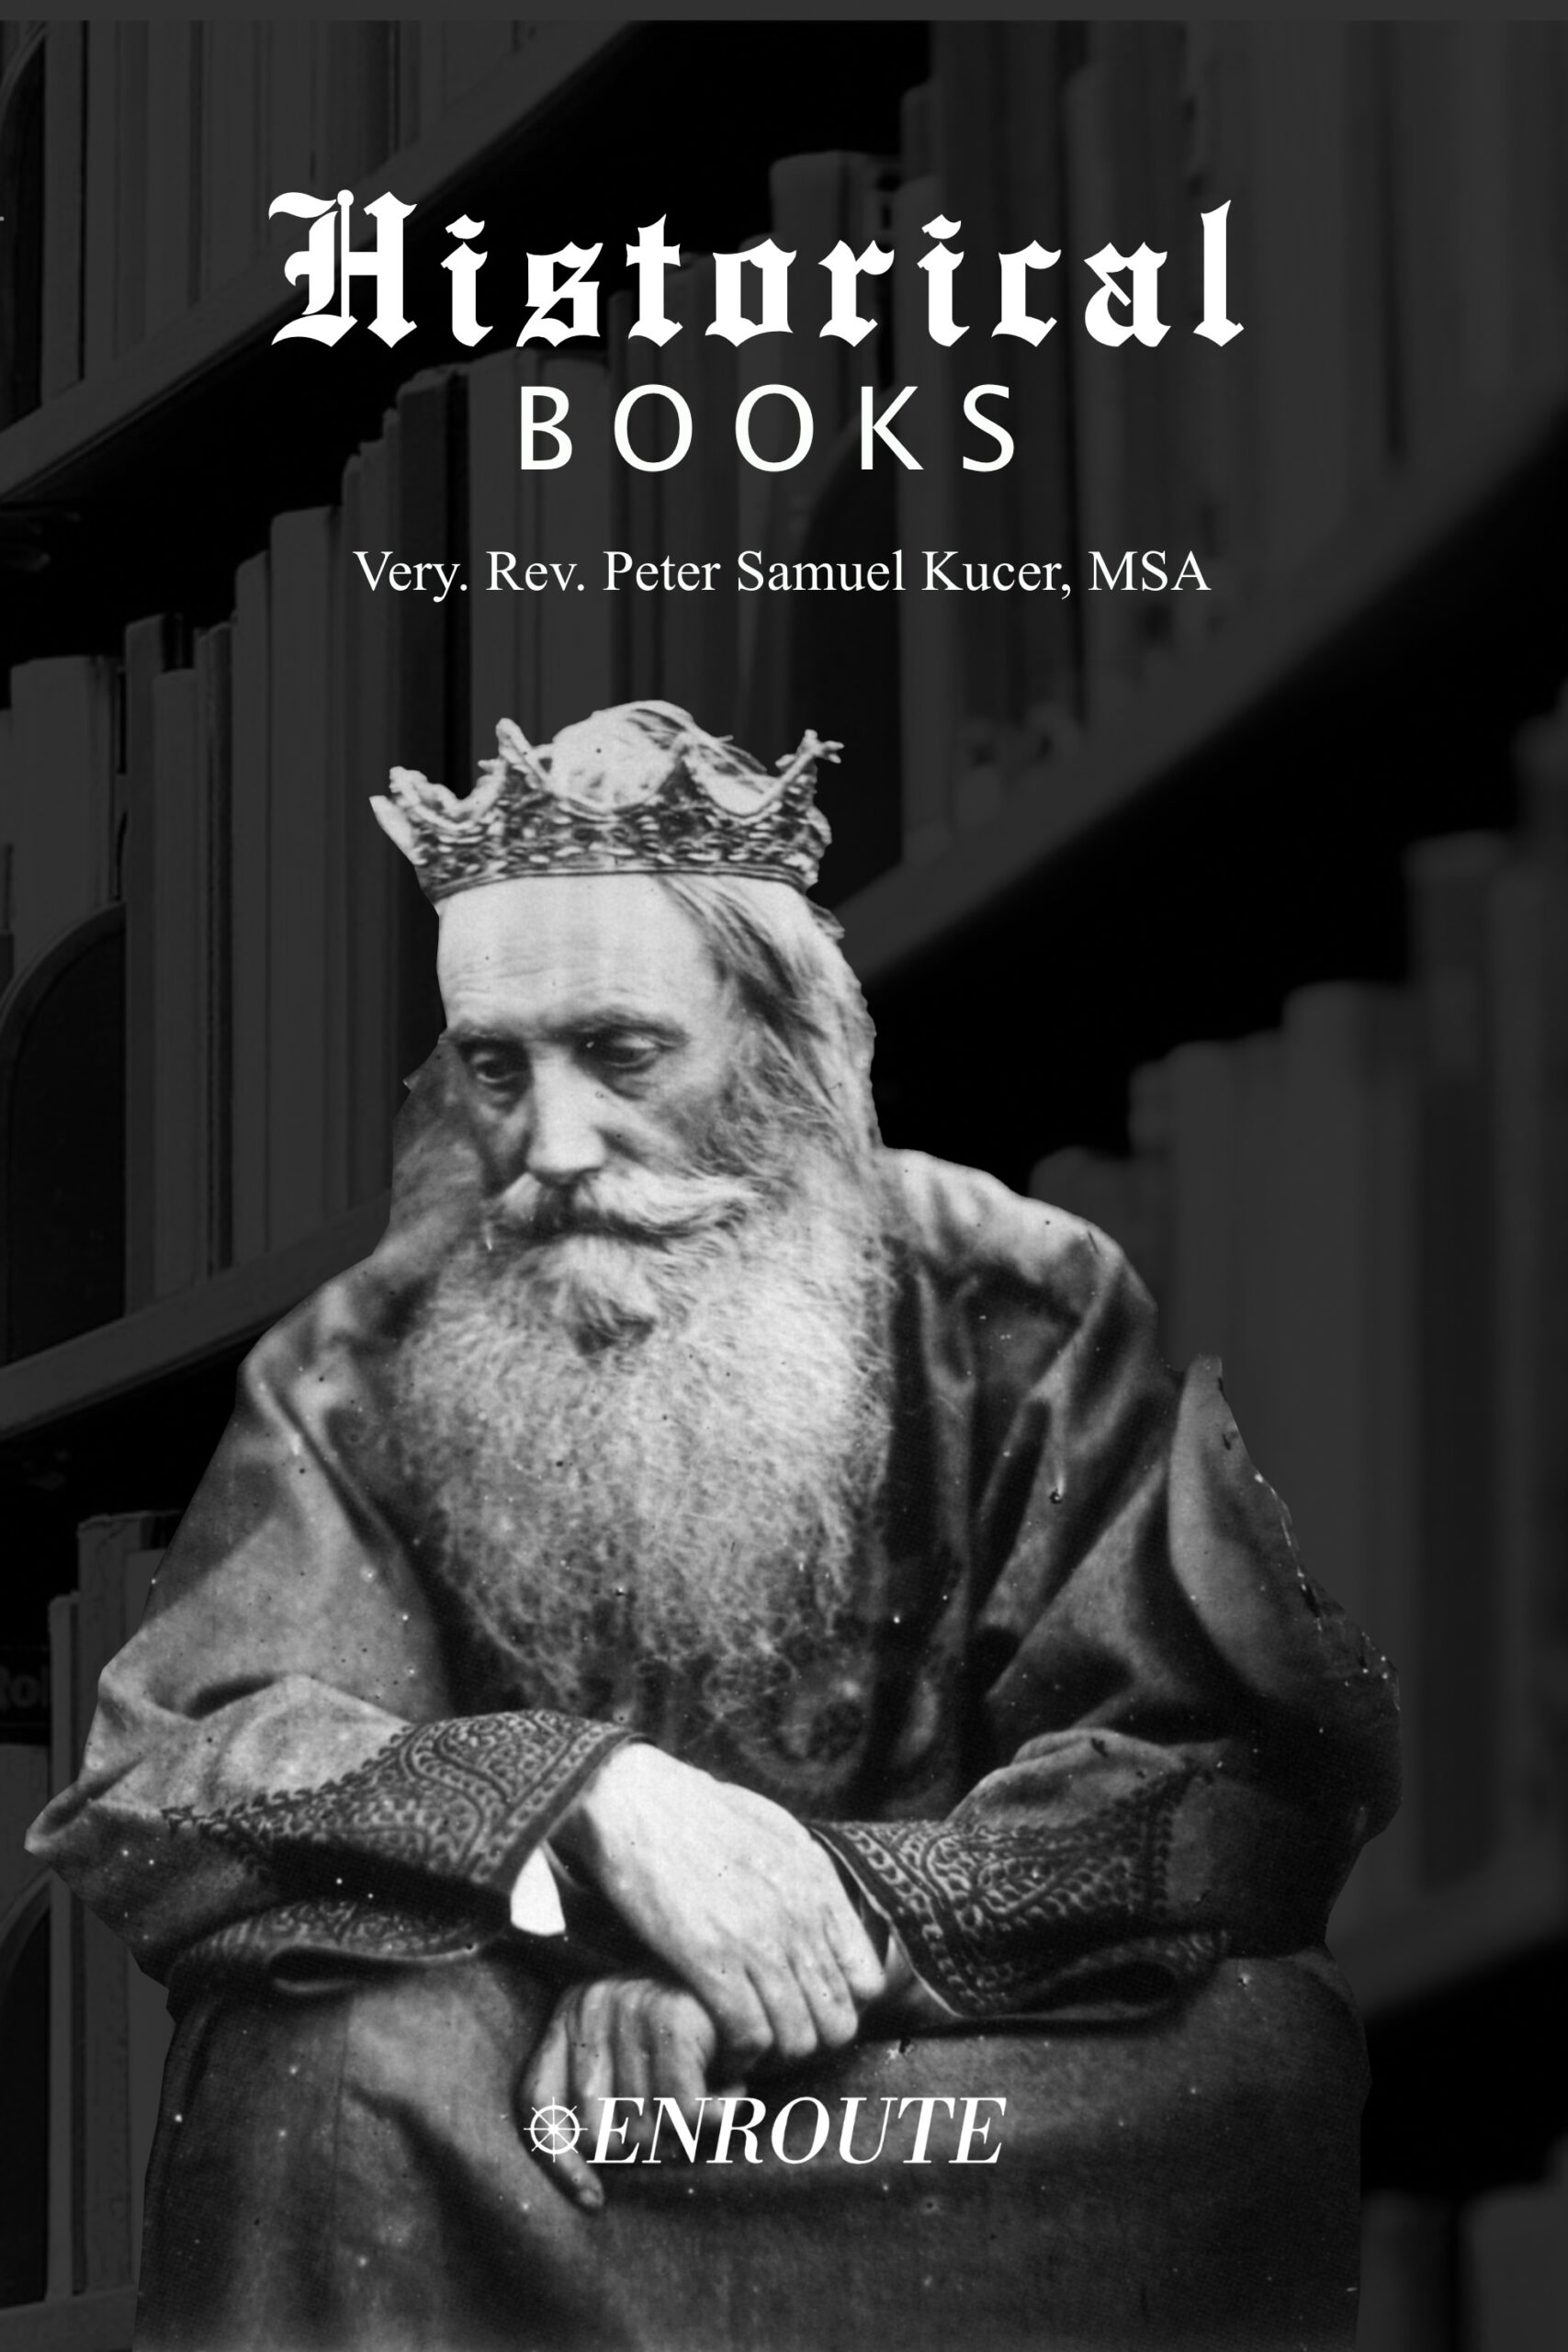 The Historical Books by Very Rev. Peter Samuel Kucer, MSA